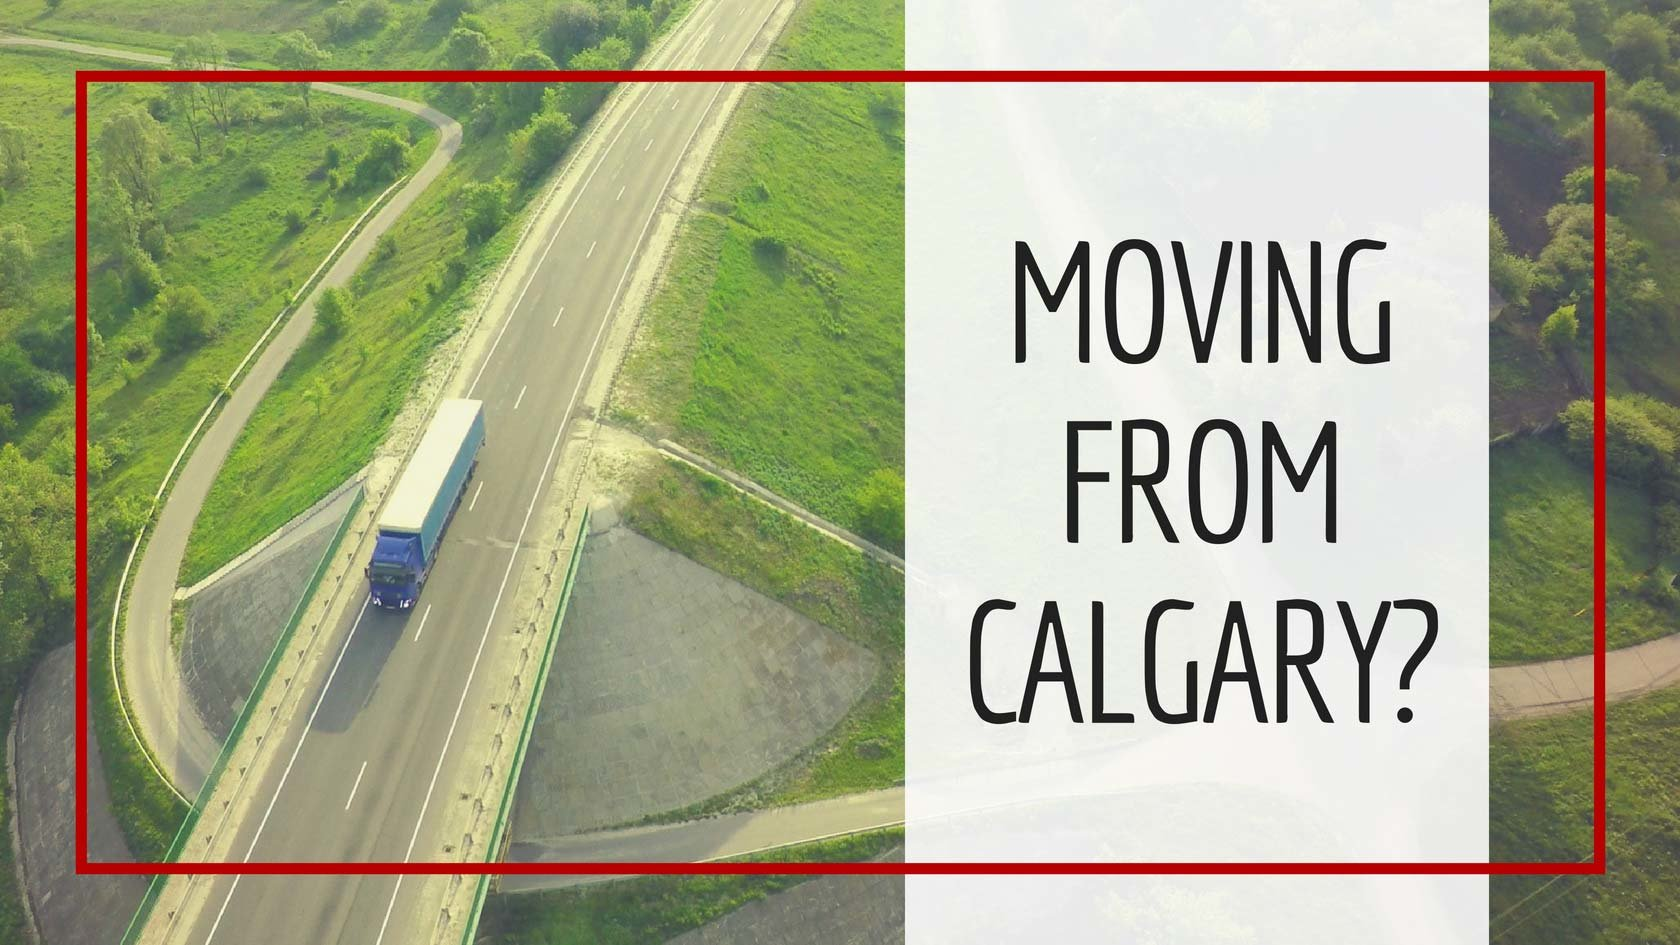 Moving Away From Calgary